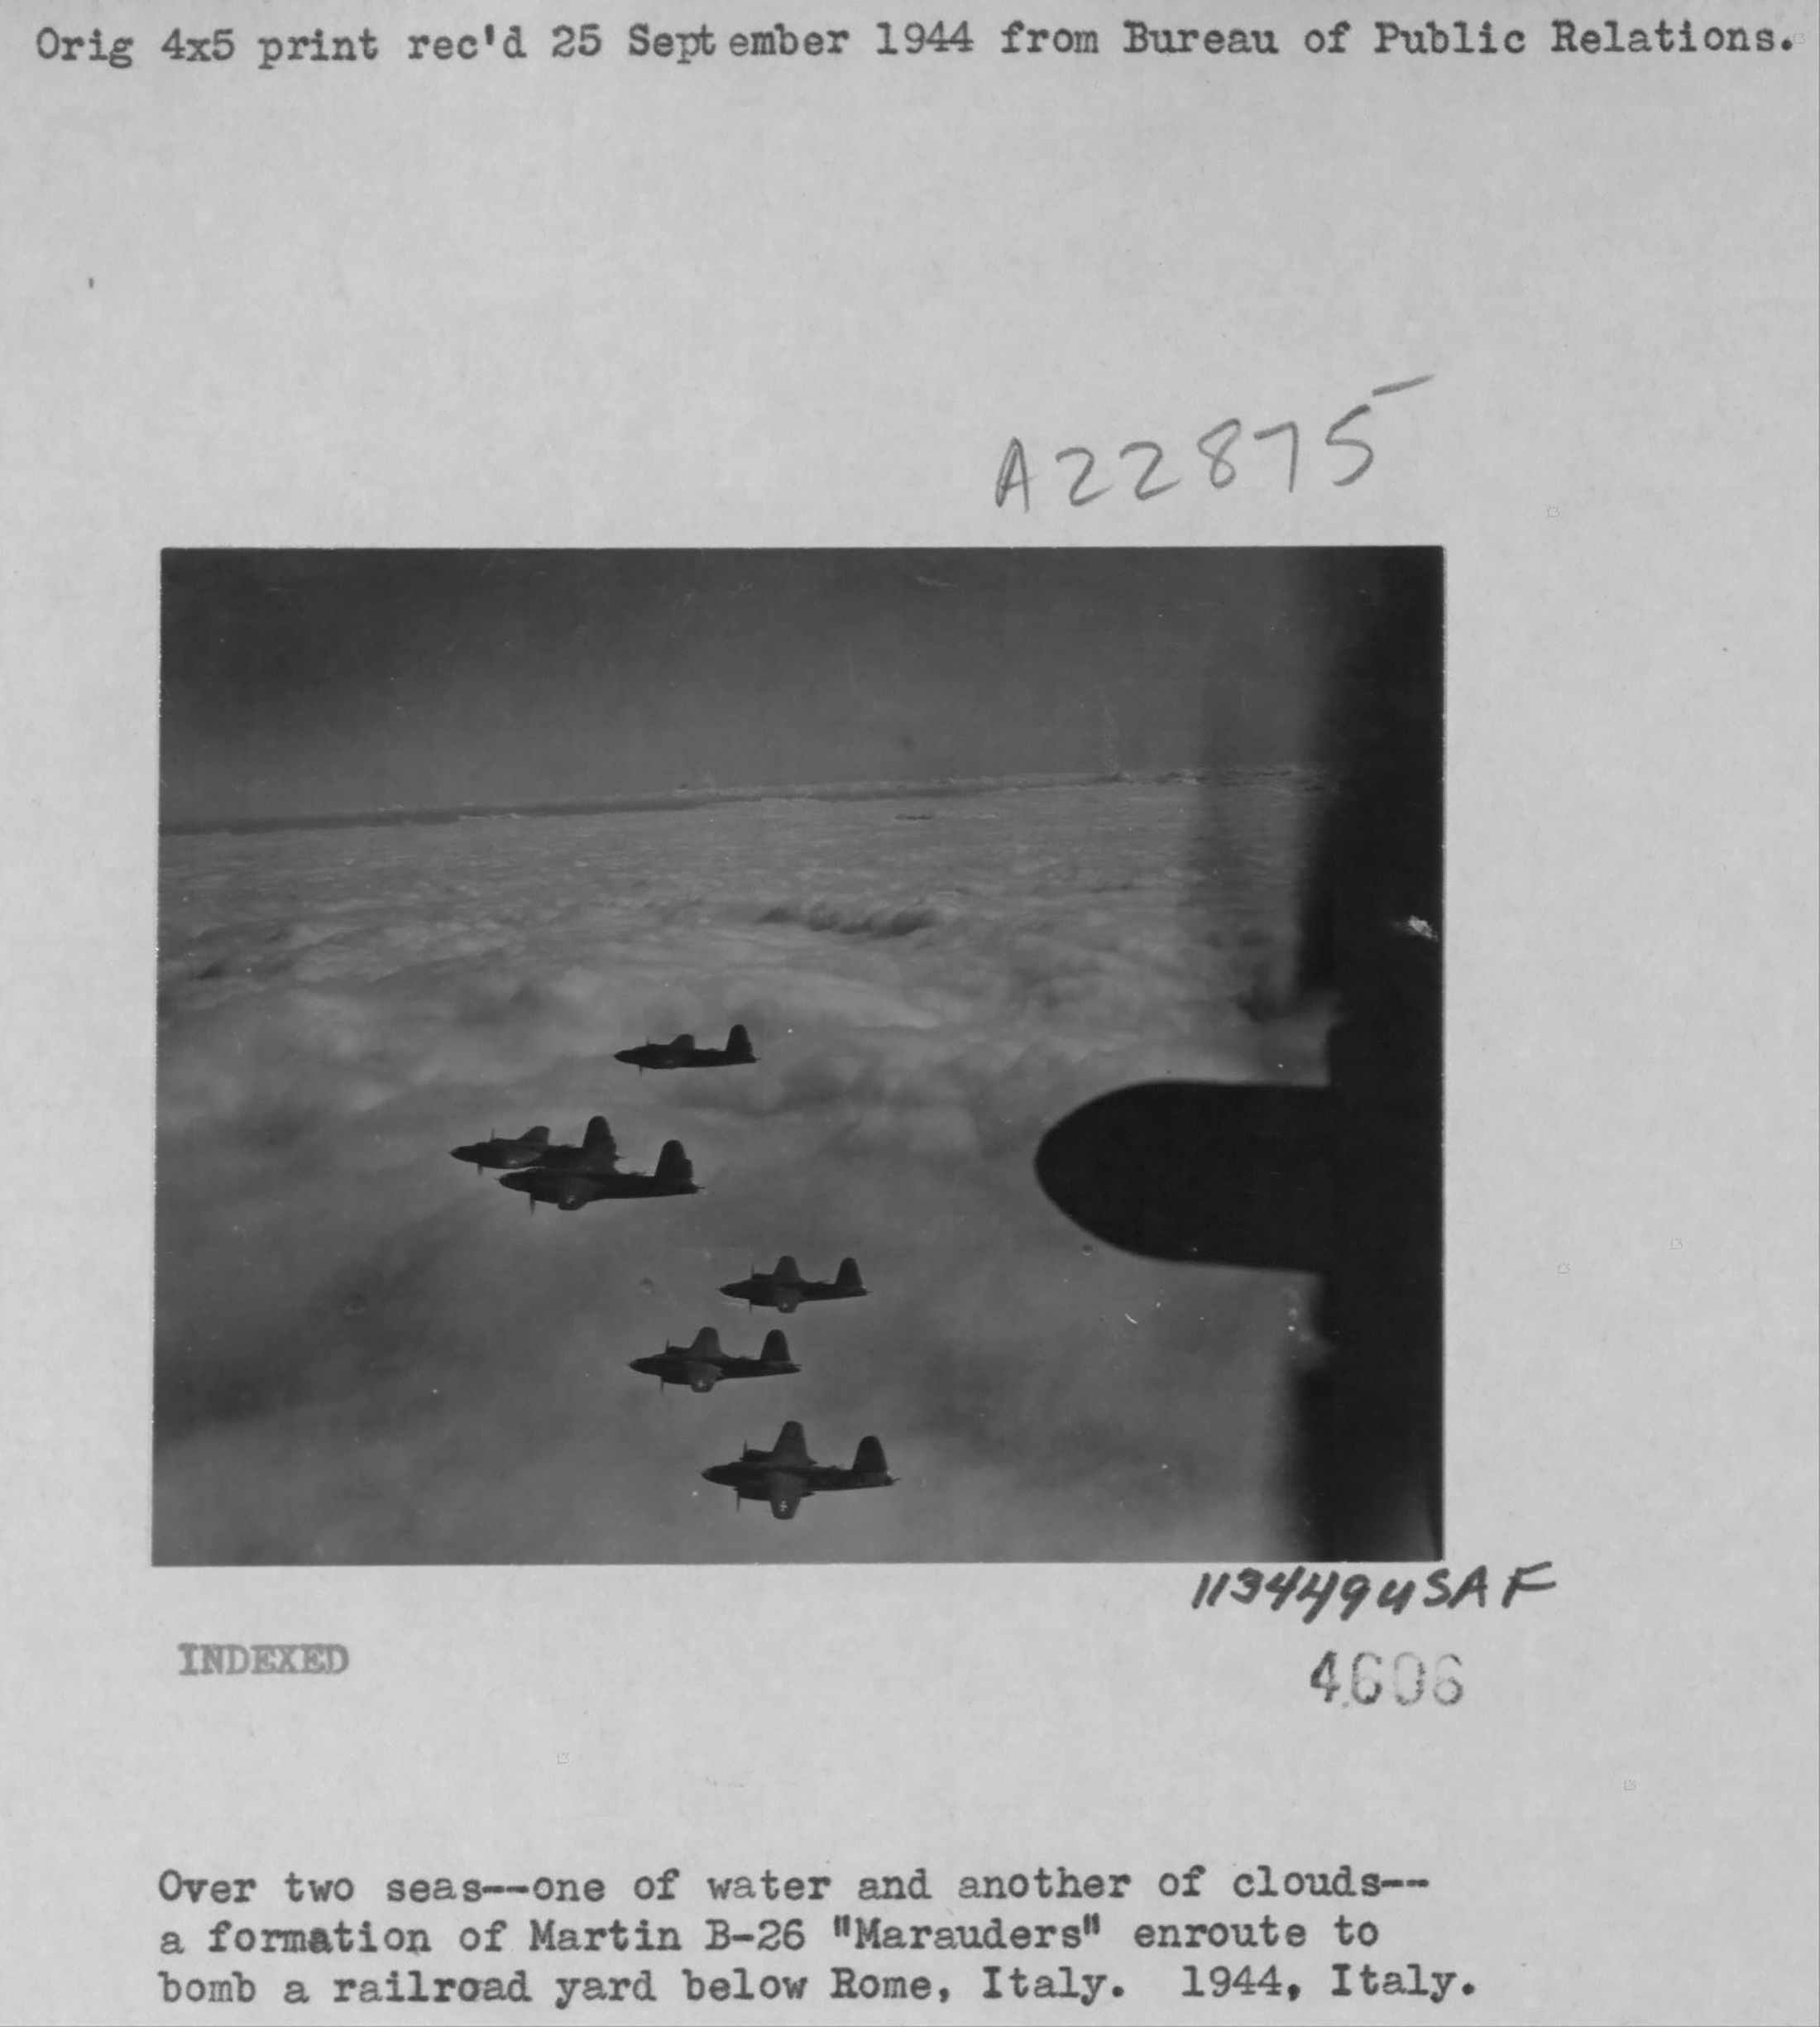 USAAF B 26 Marauders enroute to bomb a RR yard in Rome Italy 1944 01